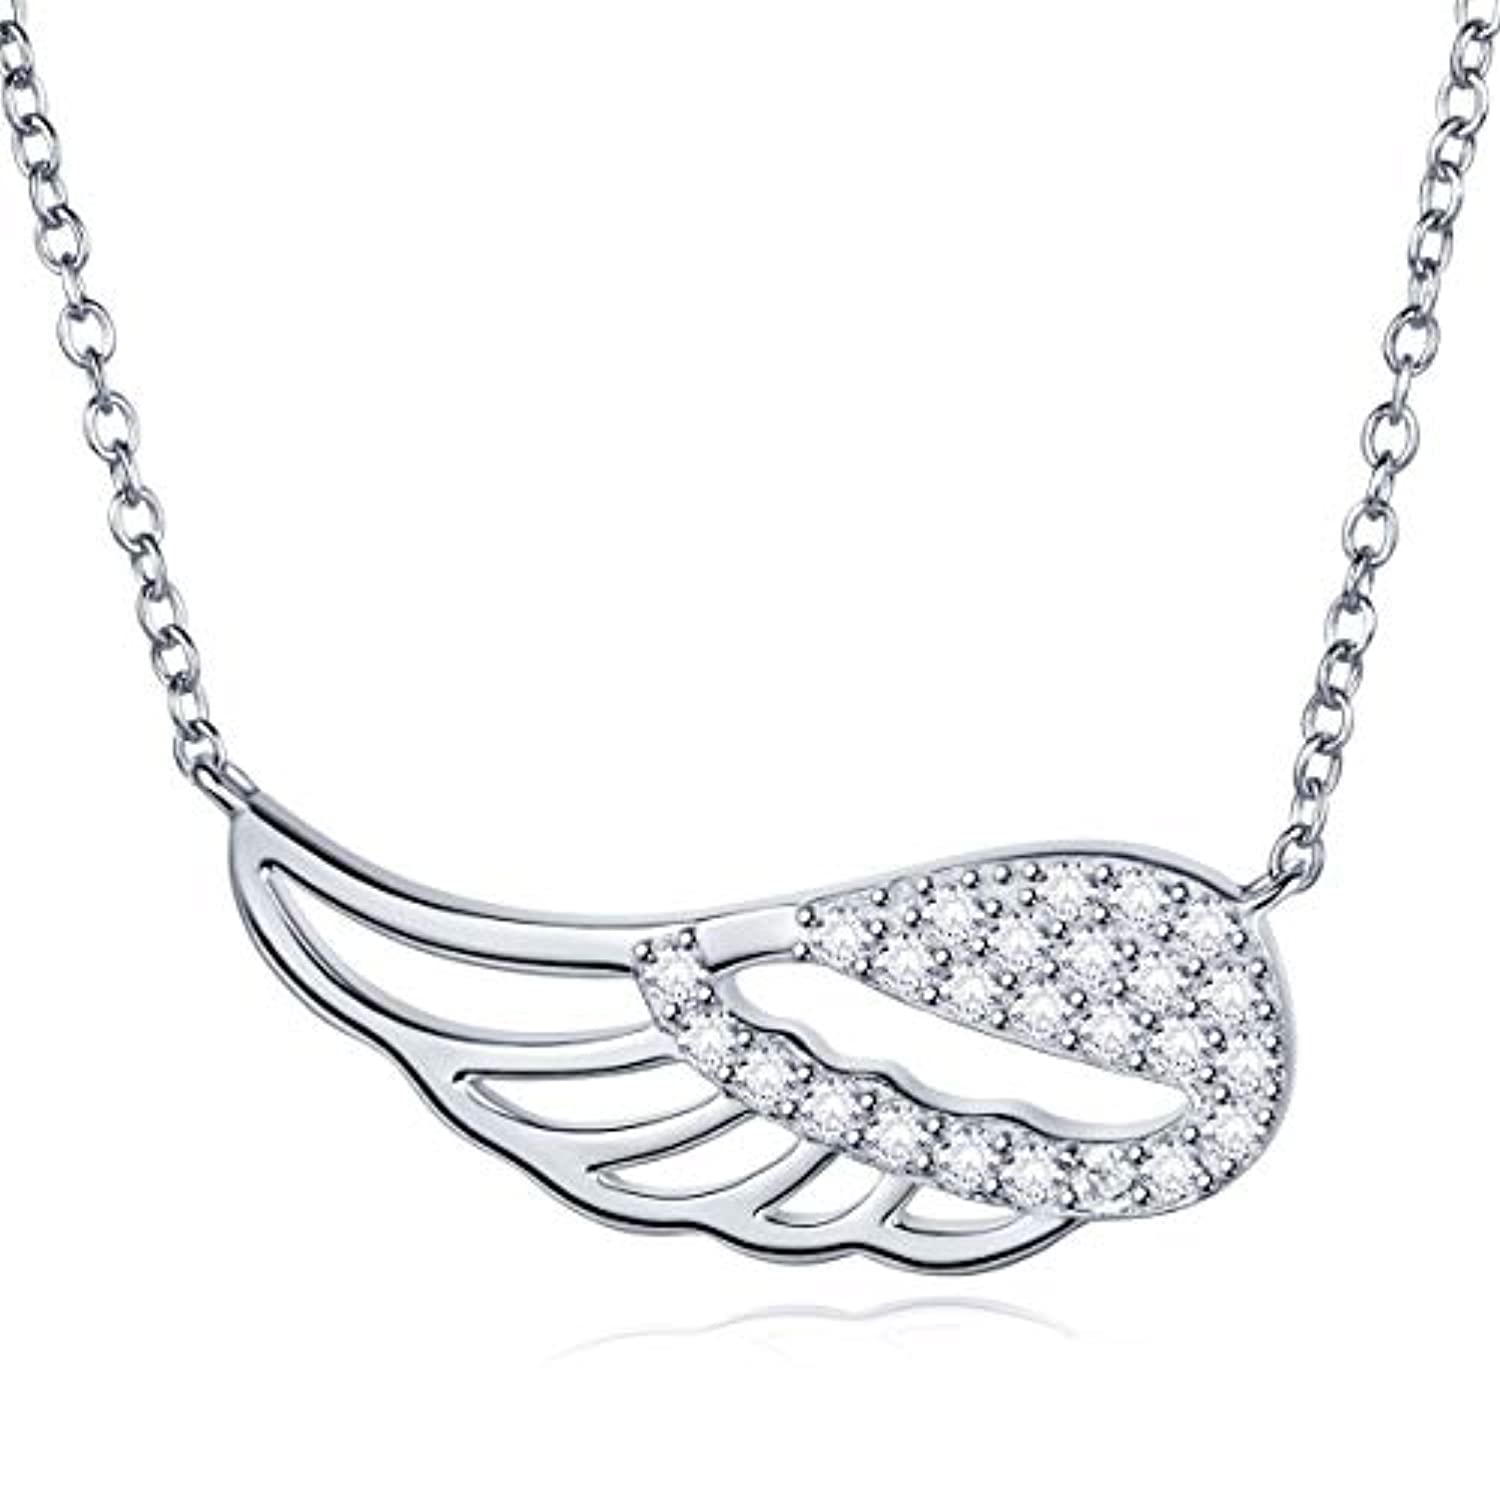 Silver Necklace for Women CZ wing of angel Dainty  Pendant Necklace Adjustable Gift for Valentine's Day or Anniversary